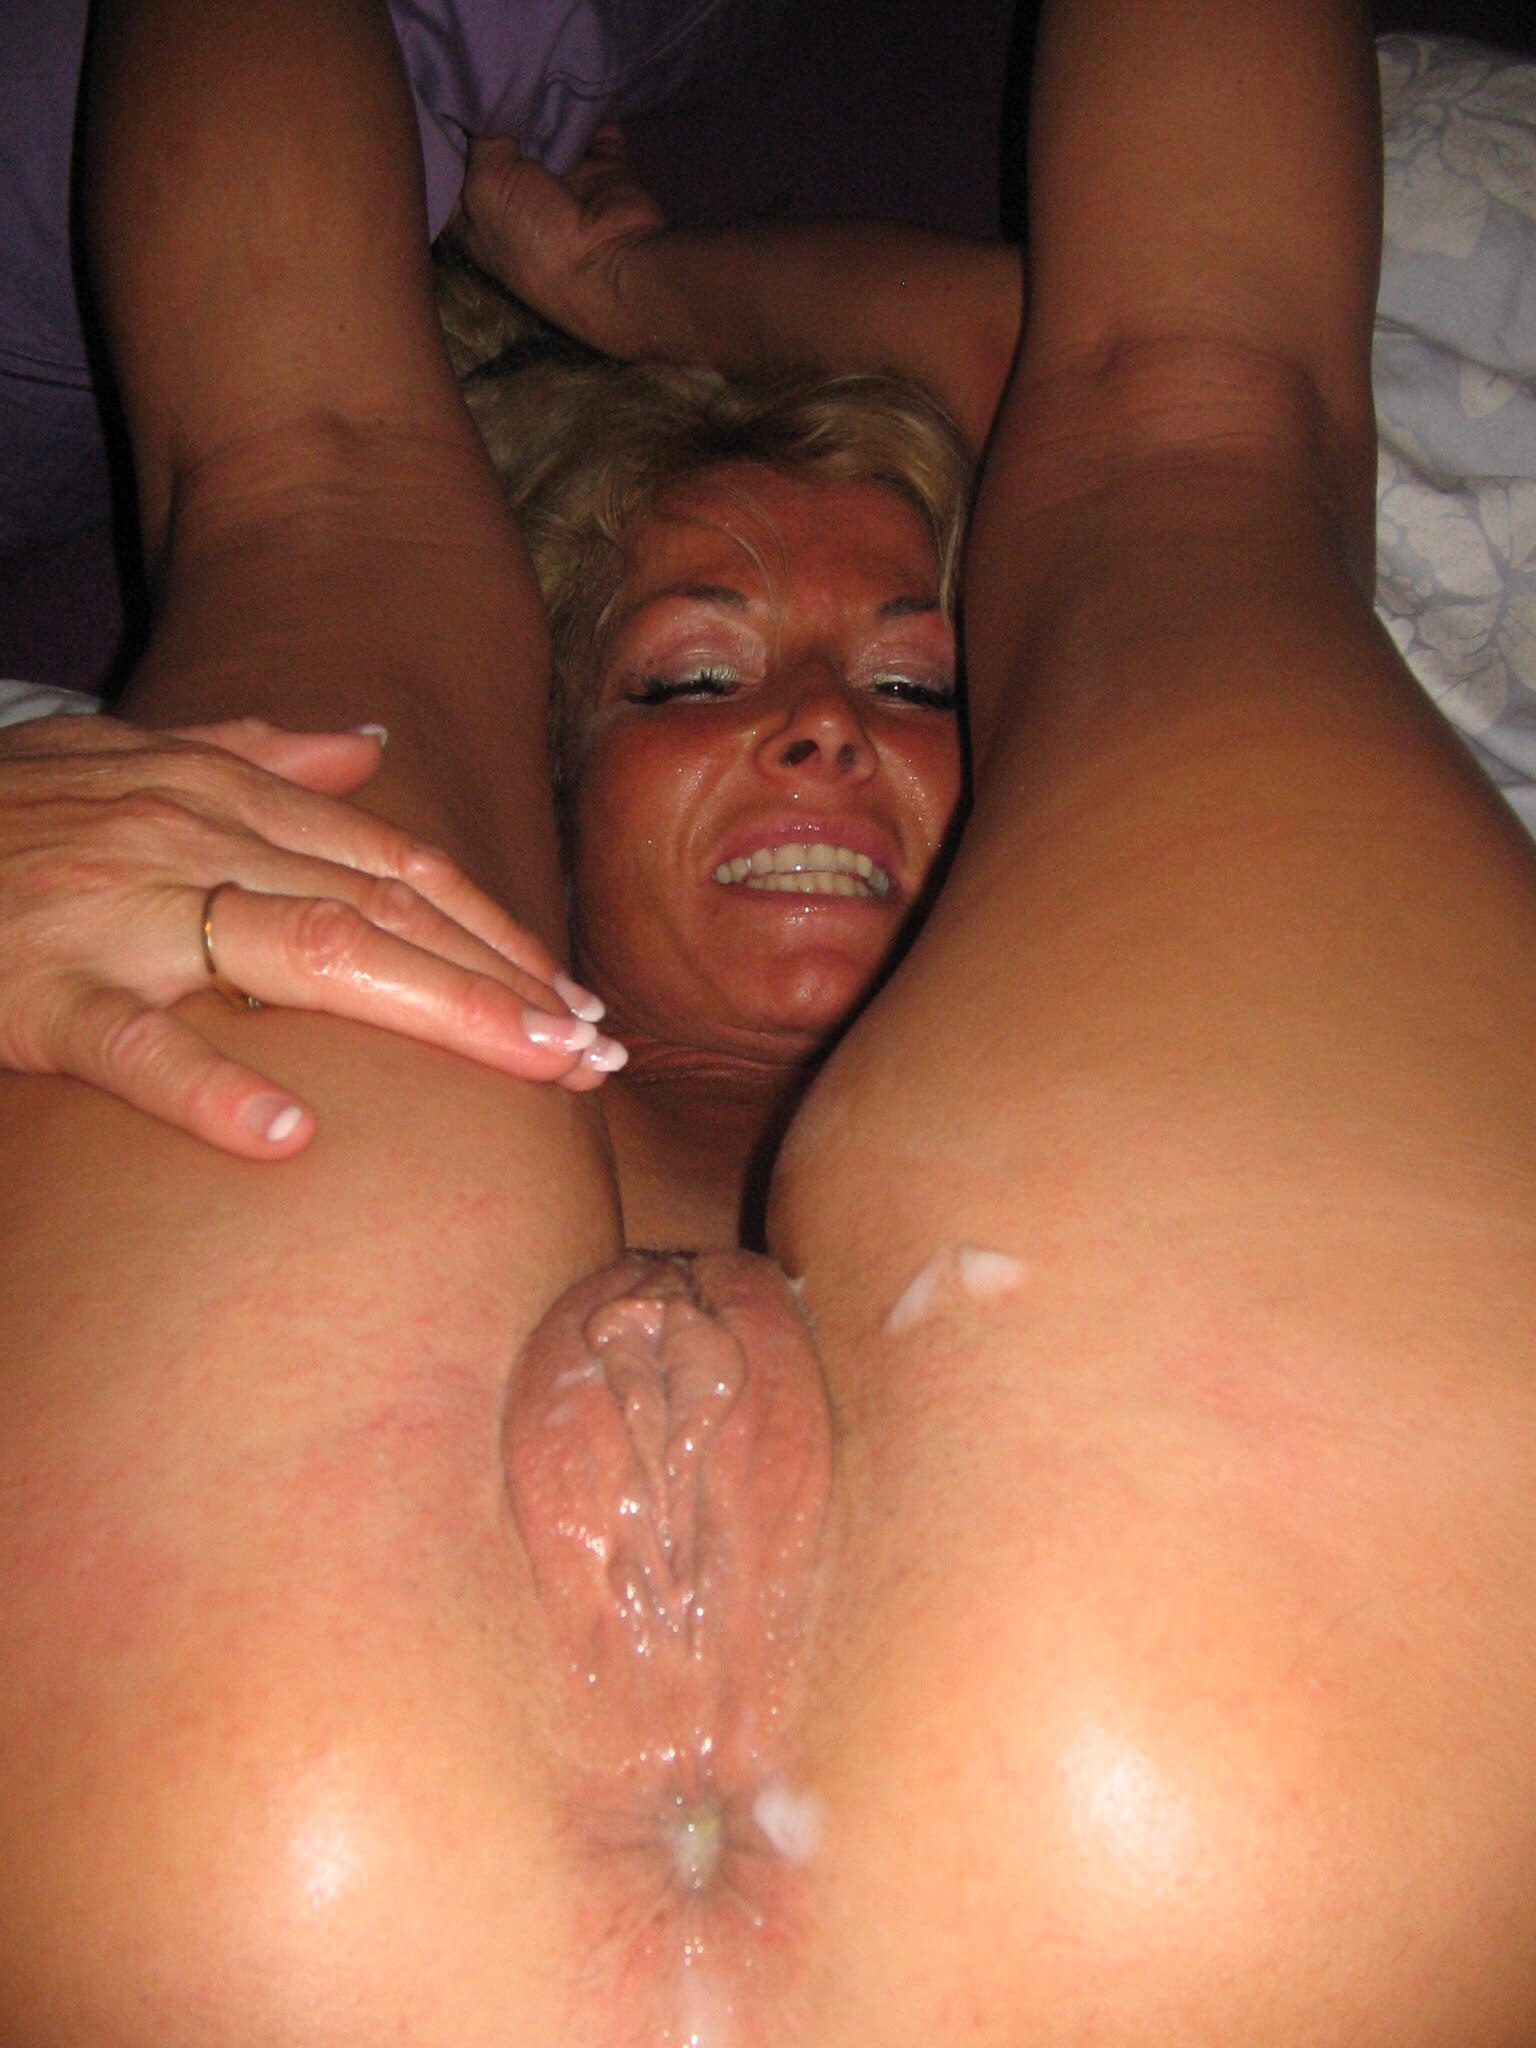 Fresh fucked pussy pictures